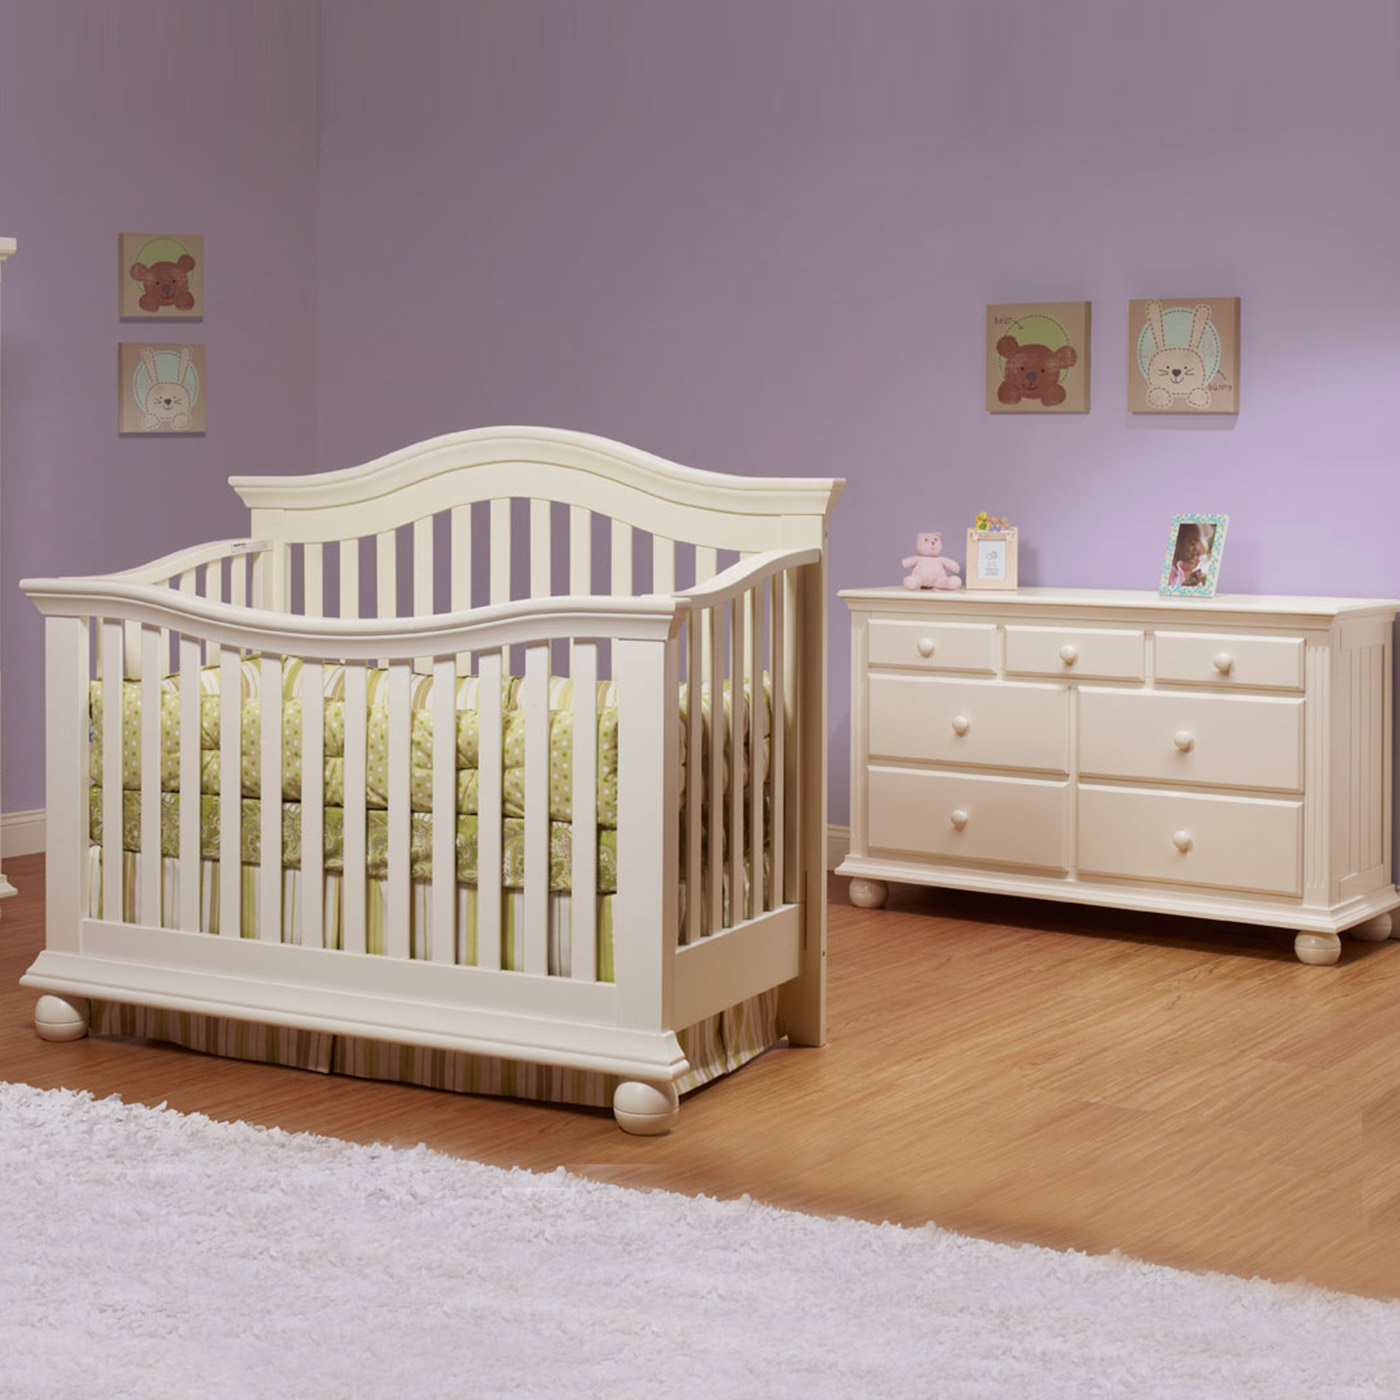 Sorelle Vista 2 Piece Nursery Set Couture Convertible Crib And